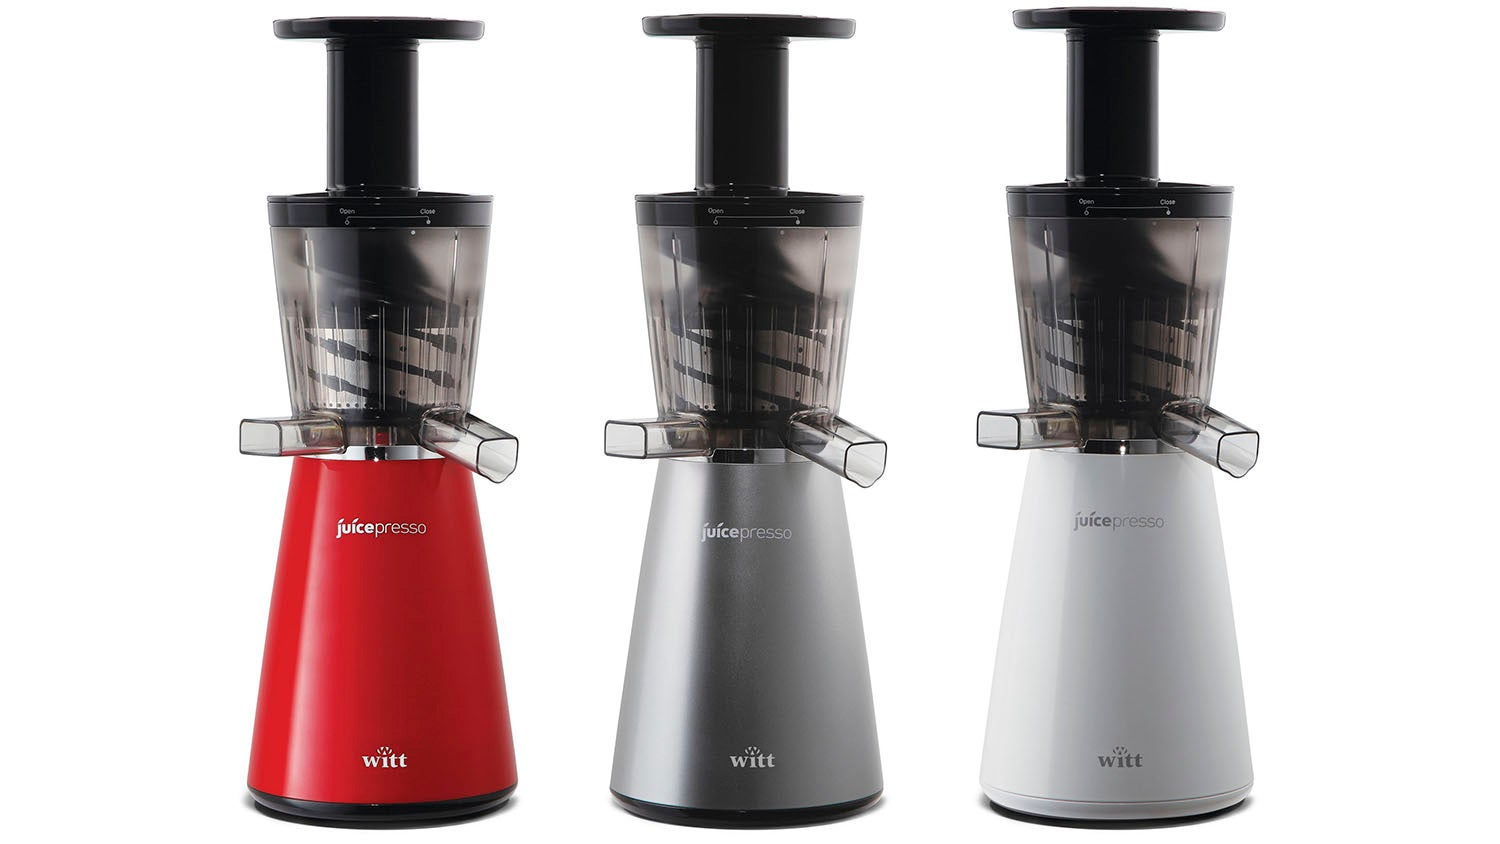 Witt Smoothie Juicepresso Review | Trusted Reviews